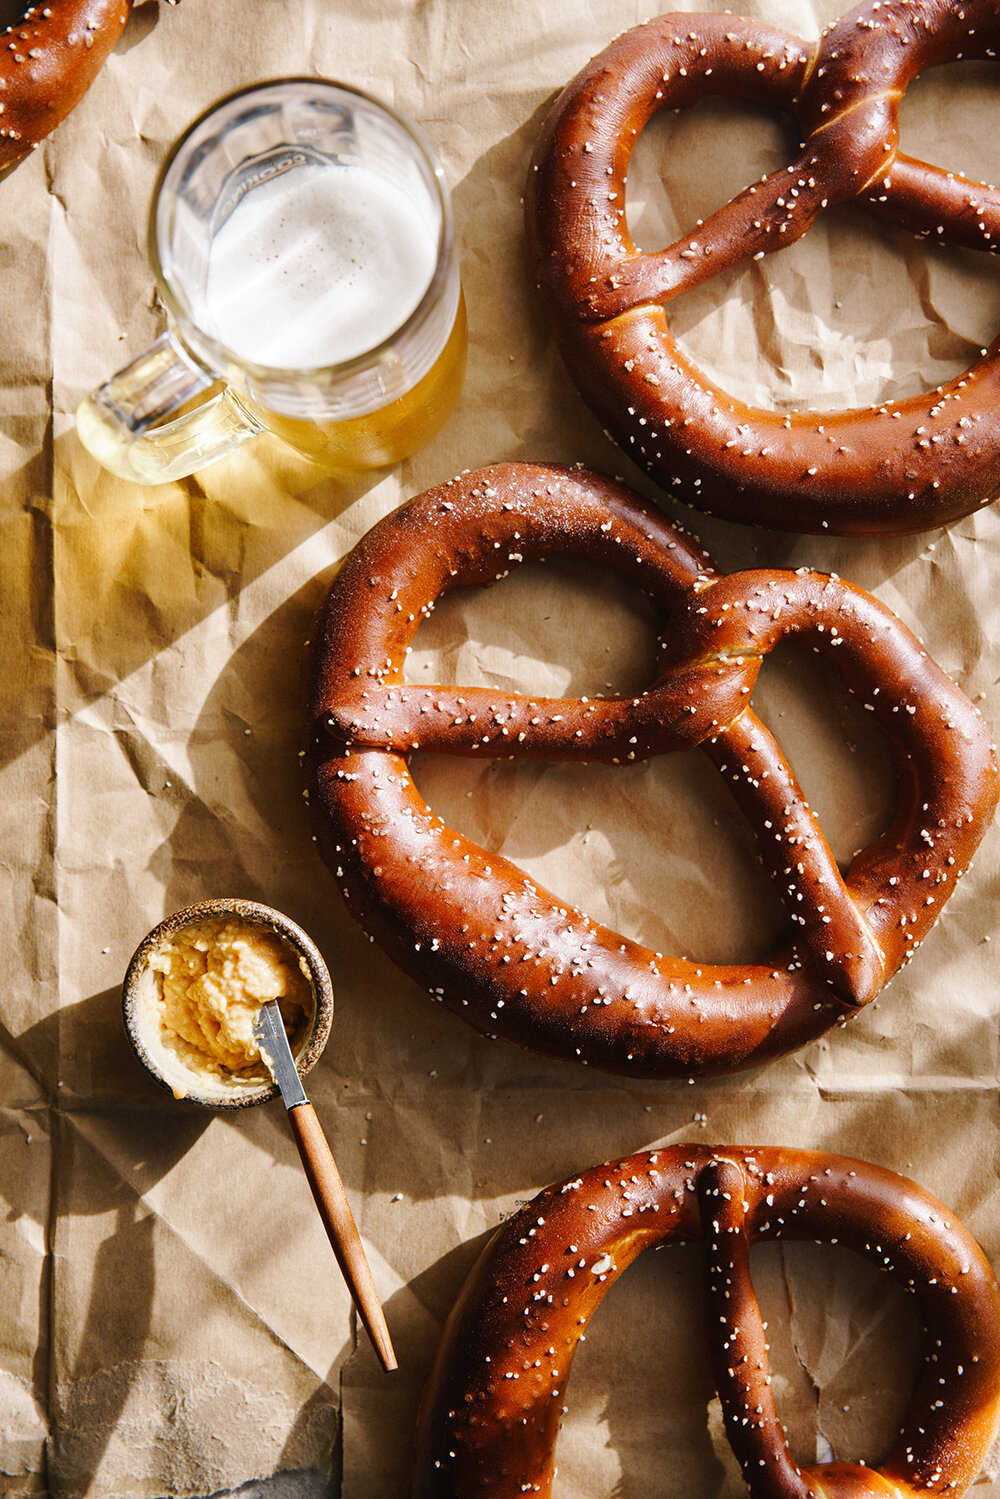 BONT_-0060-3_pretzels and beer cheese-WEB.jpg